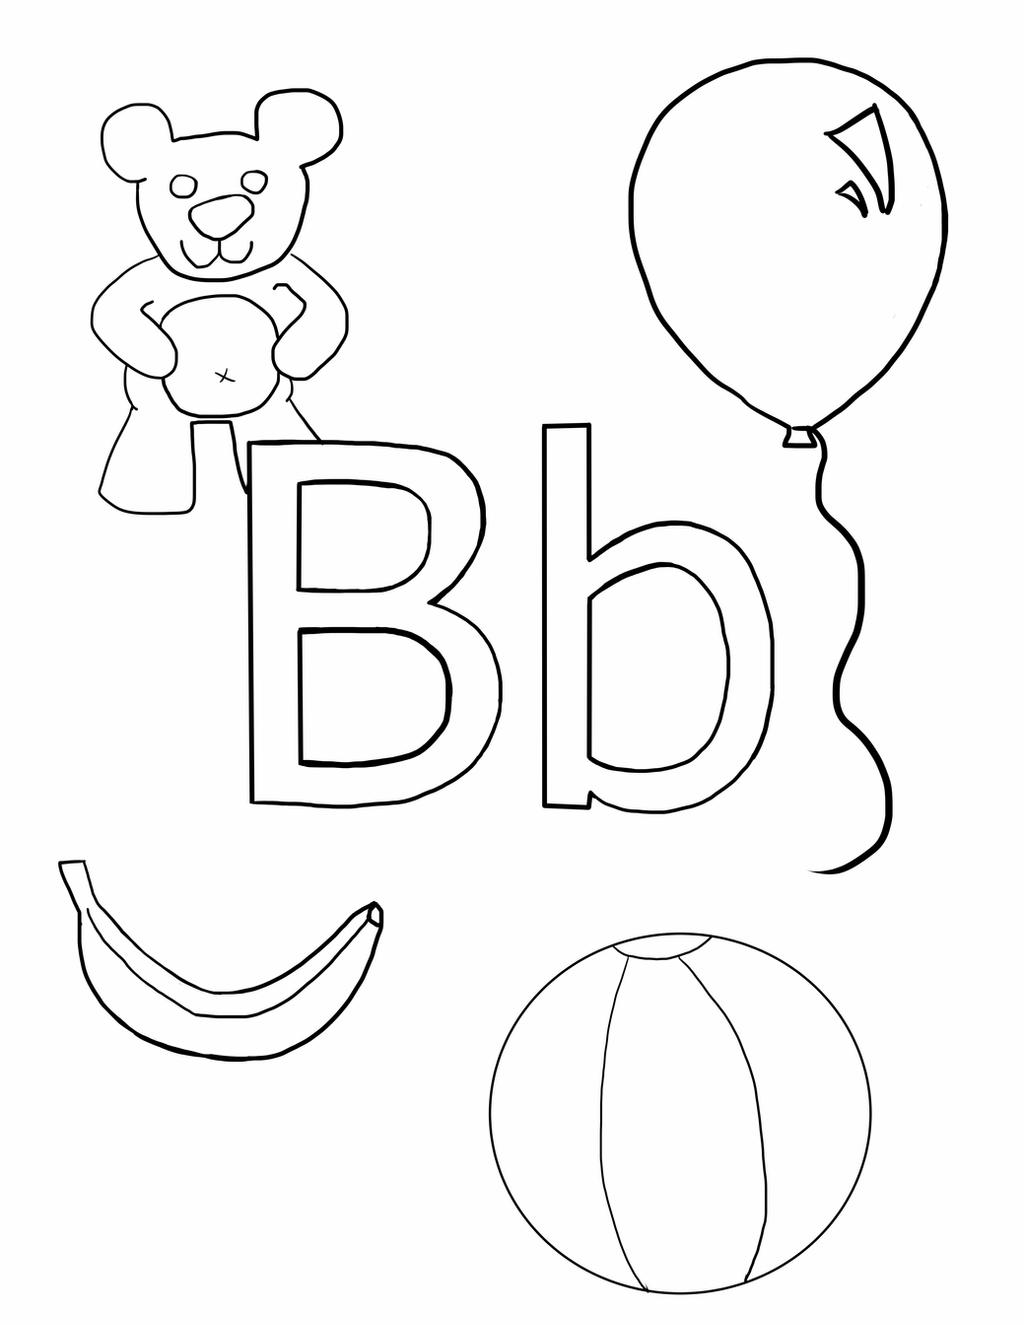 coloring letter b pictures letter b coloring pages preschool and kindergarten b coloring pictures letter